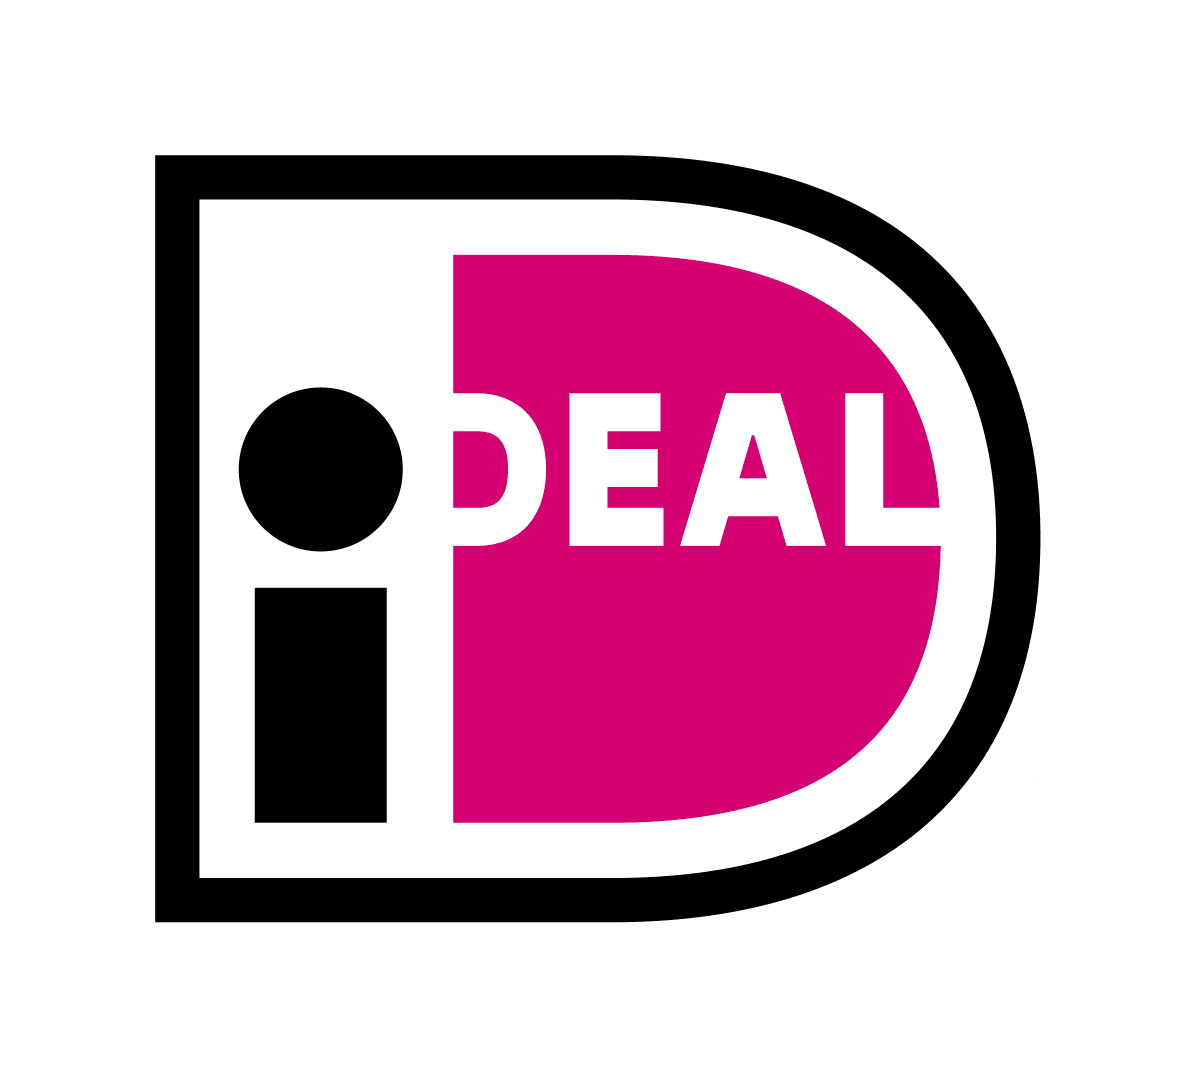 ideal-logo-png-transparent -